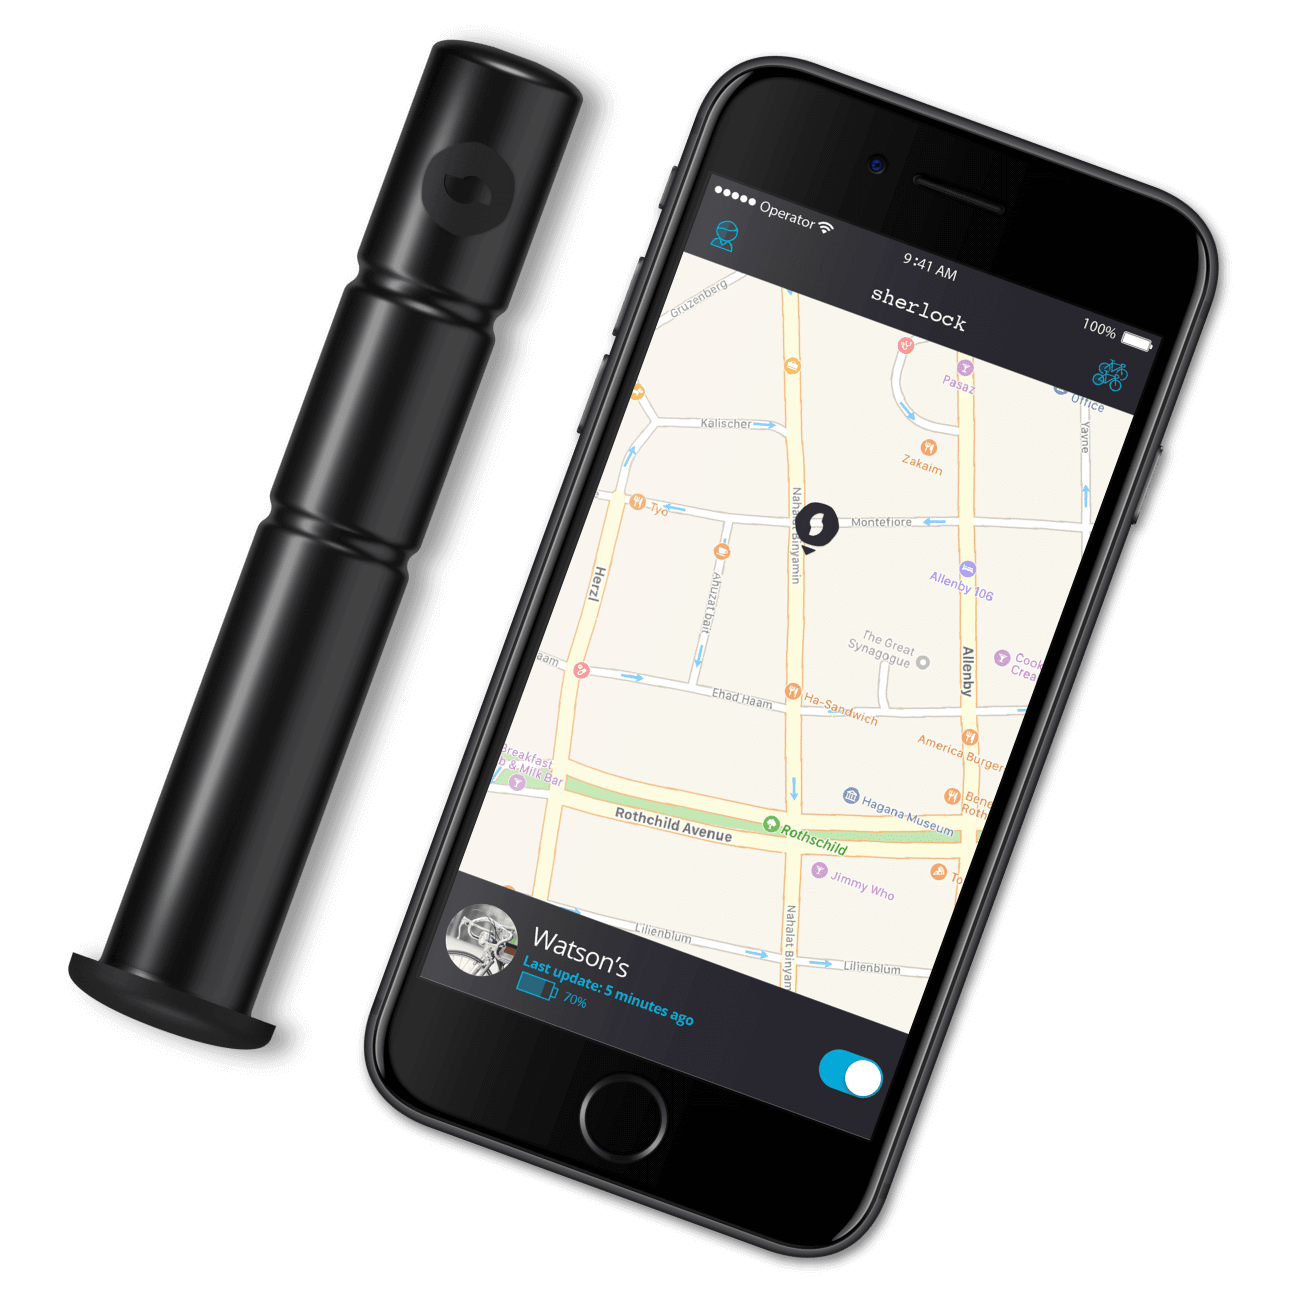 The Sherlock device and app